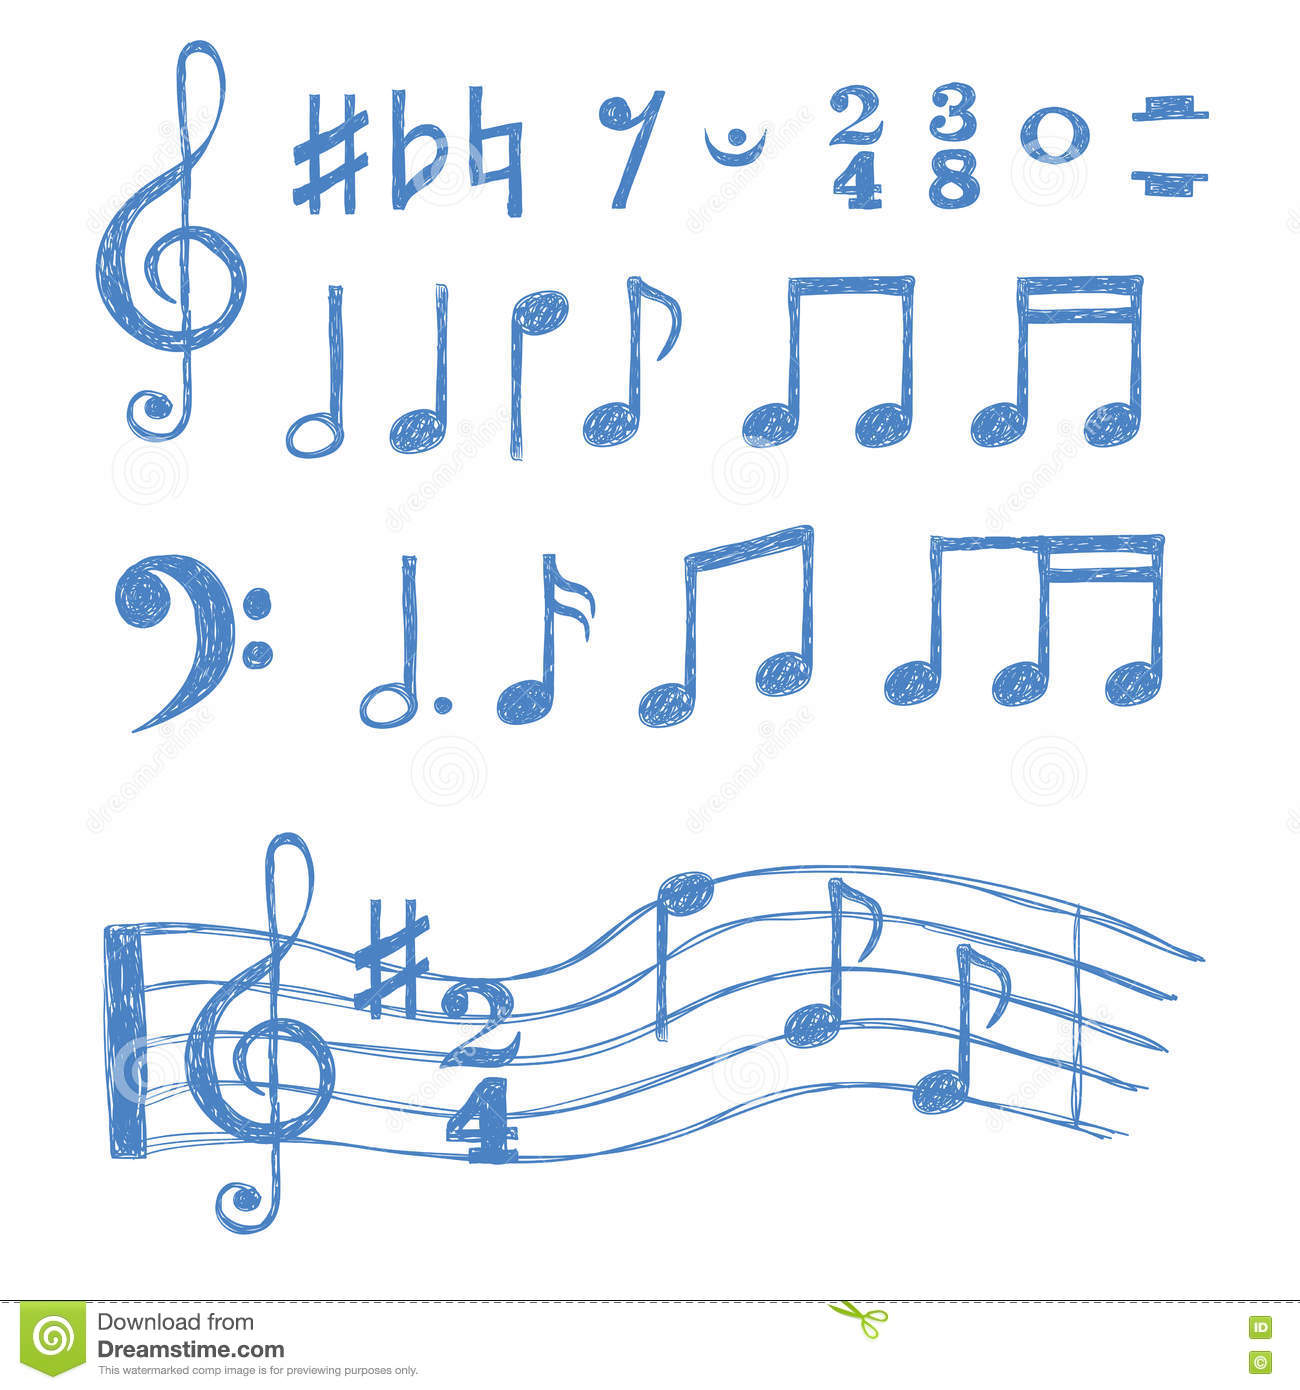 dd93b3211181 Music Notes Set. Collection Of Sketch Music Symbols Stock Vector ...